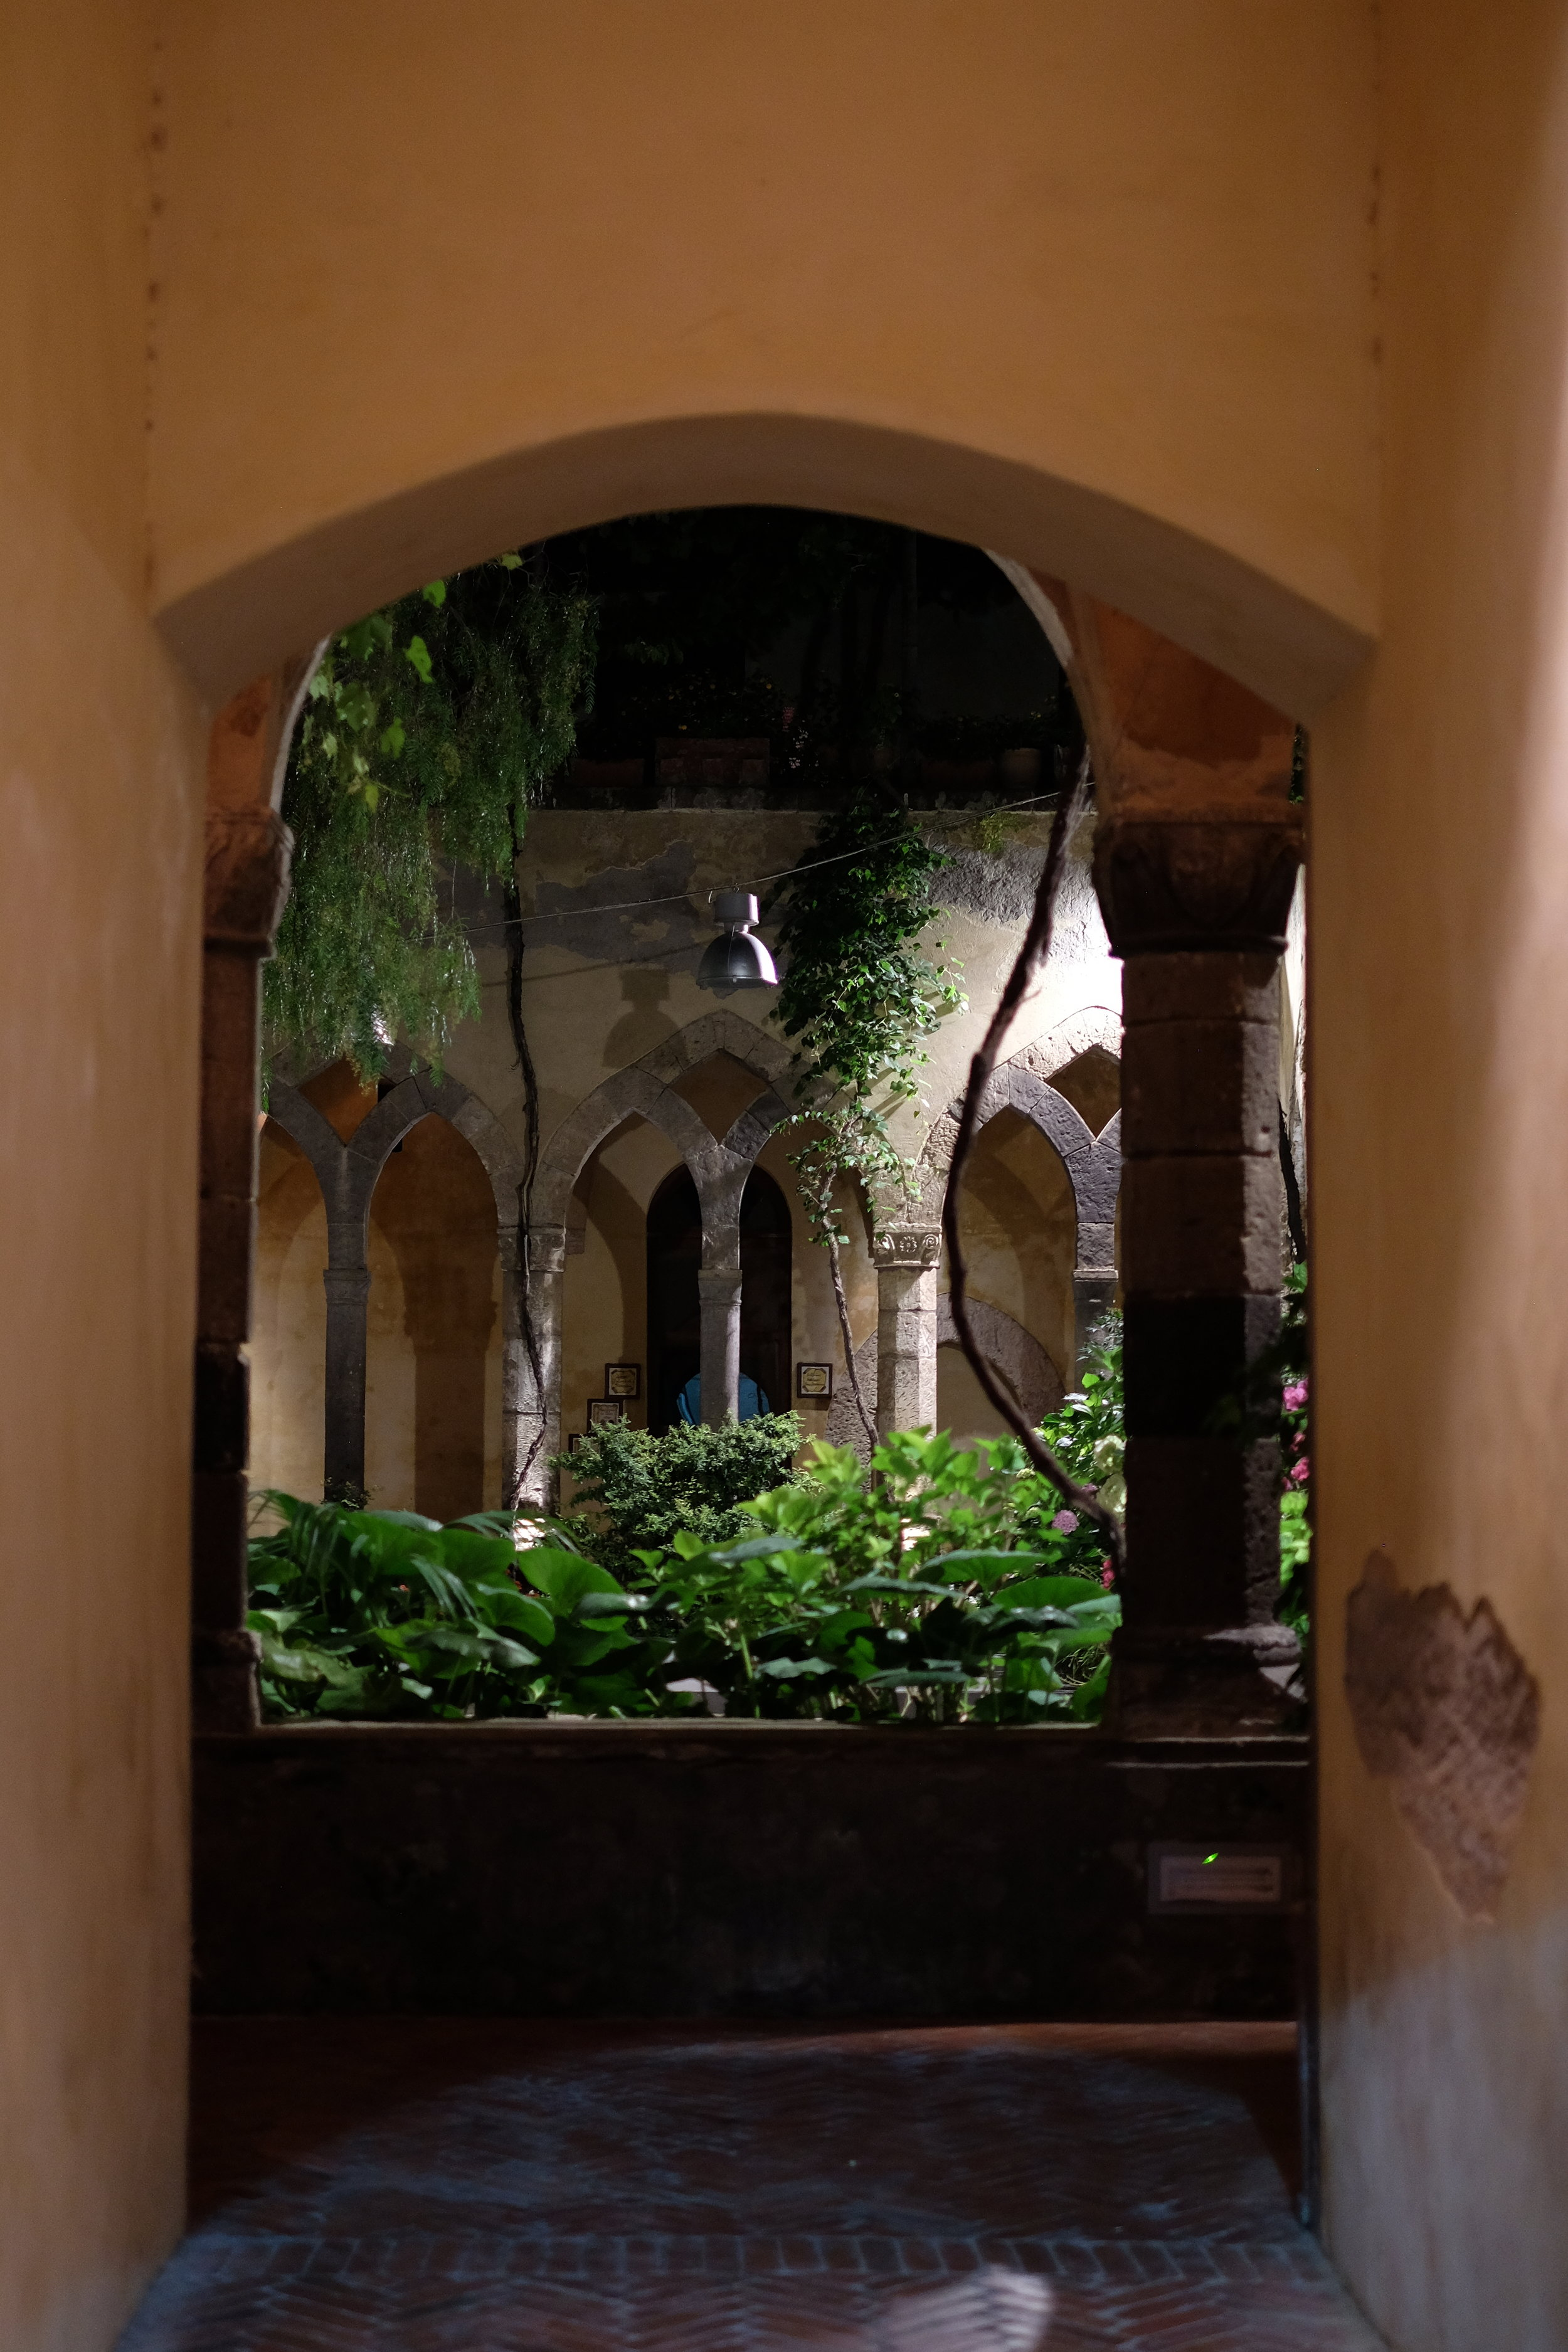 The romantic atmosphere of the cloister in San Francesco church.